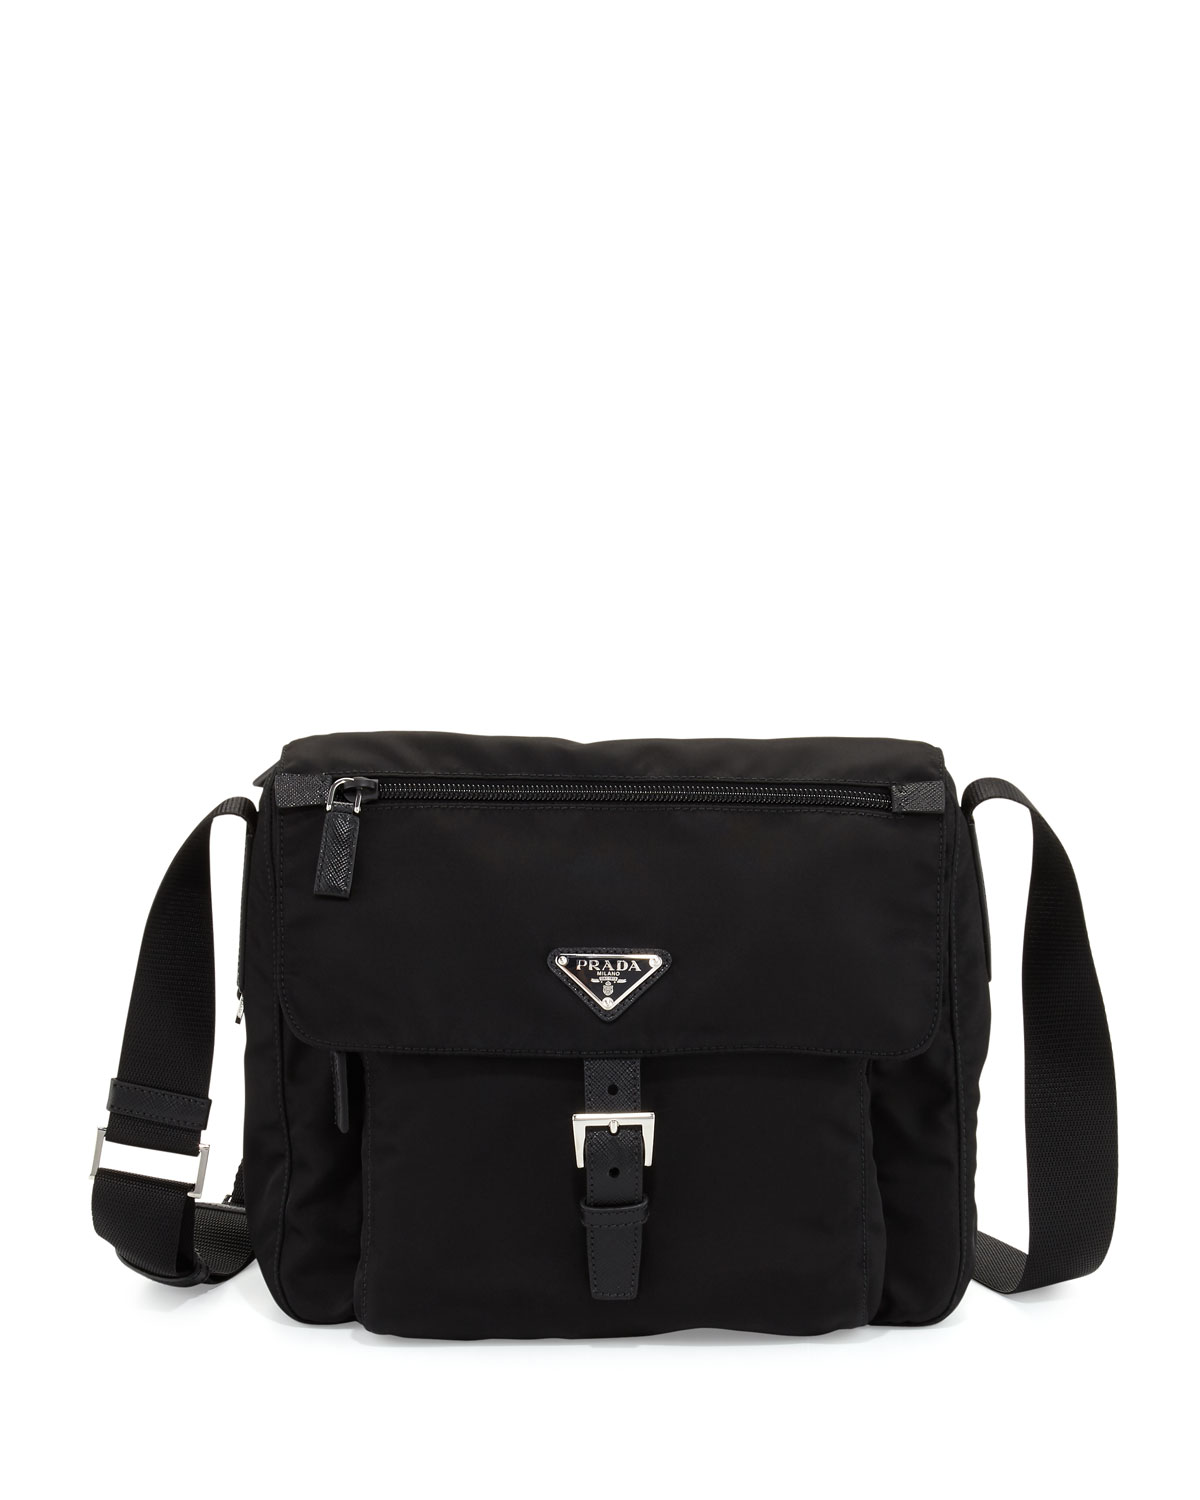 4c0b2a62e25c Prada Small Nylon Crossbody Bag, Black (Nero) | Neiman Marcus